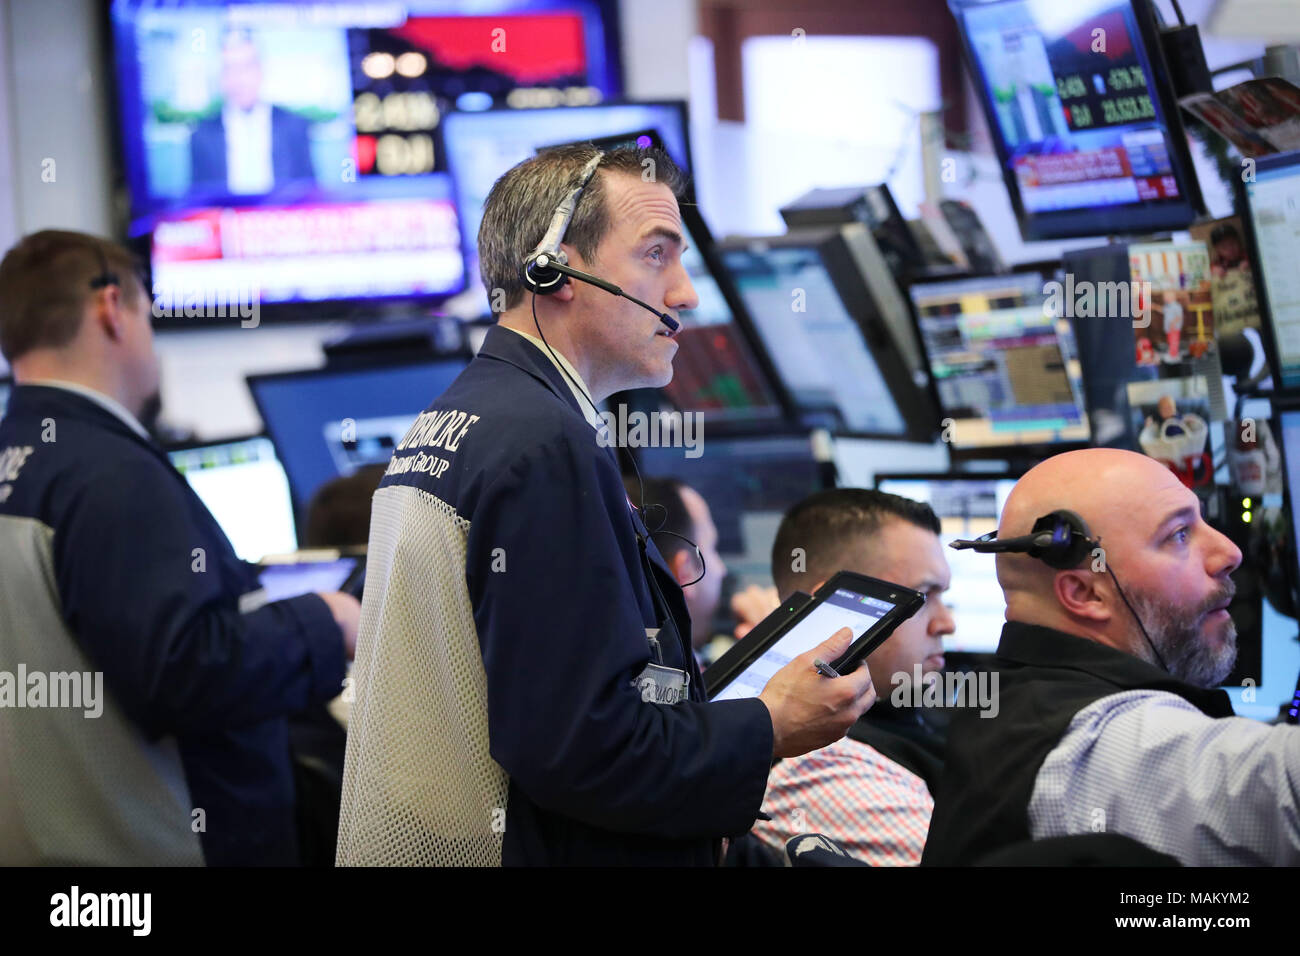 New York, USA. 2nd Apr, 2018. Traders work at the New York Stock Exchange in New York, the United States, April 2, 2018. U.S. stocks ended lower on Monday, the first trading day in April, as worries about trade issues and a sharp decline in the technology sector weighed on the market. Credit: Wang Ying/Xinhua/Alamy Live News - Stock Image